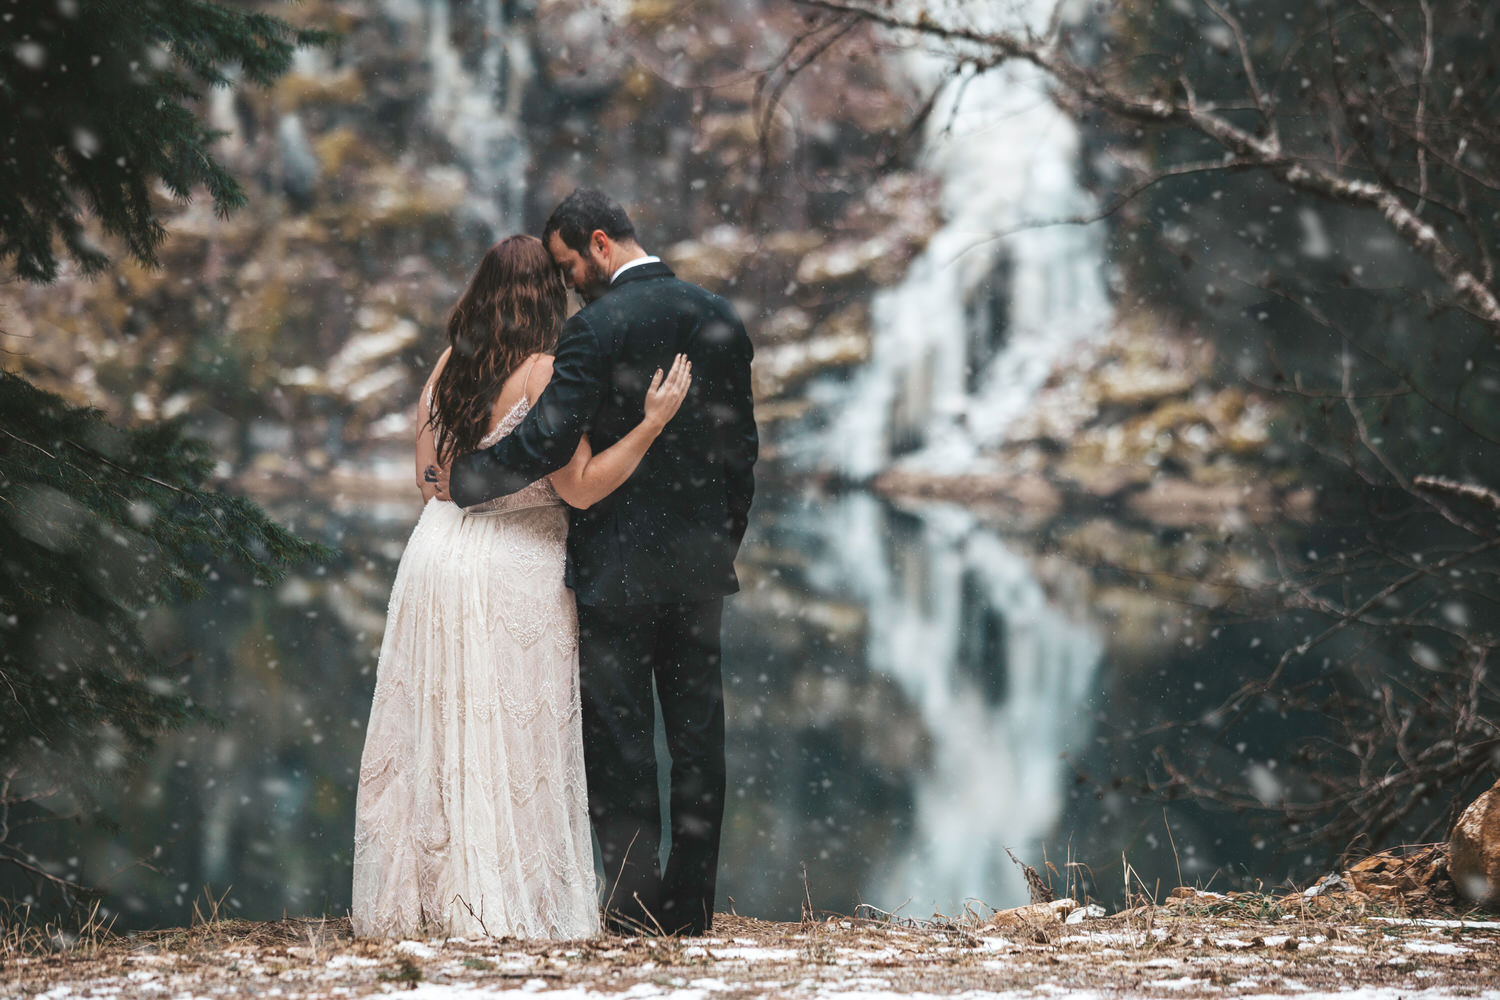 - CONTACT US TO GET STARTED PLANNING YOUR DREAM ADVENTURE WEDDING OR ELOPEMENT